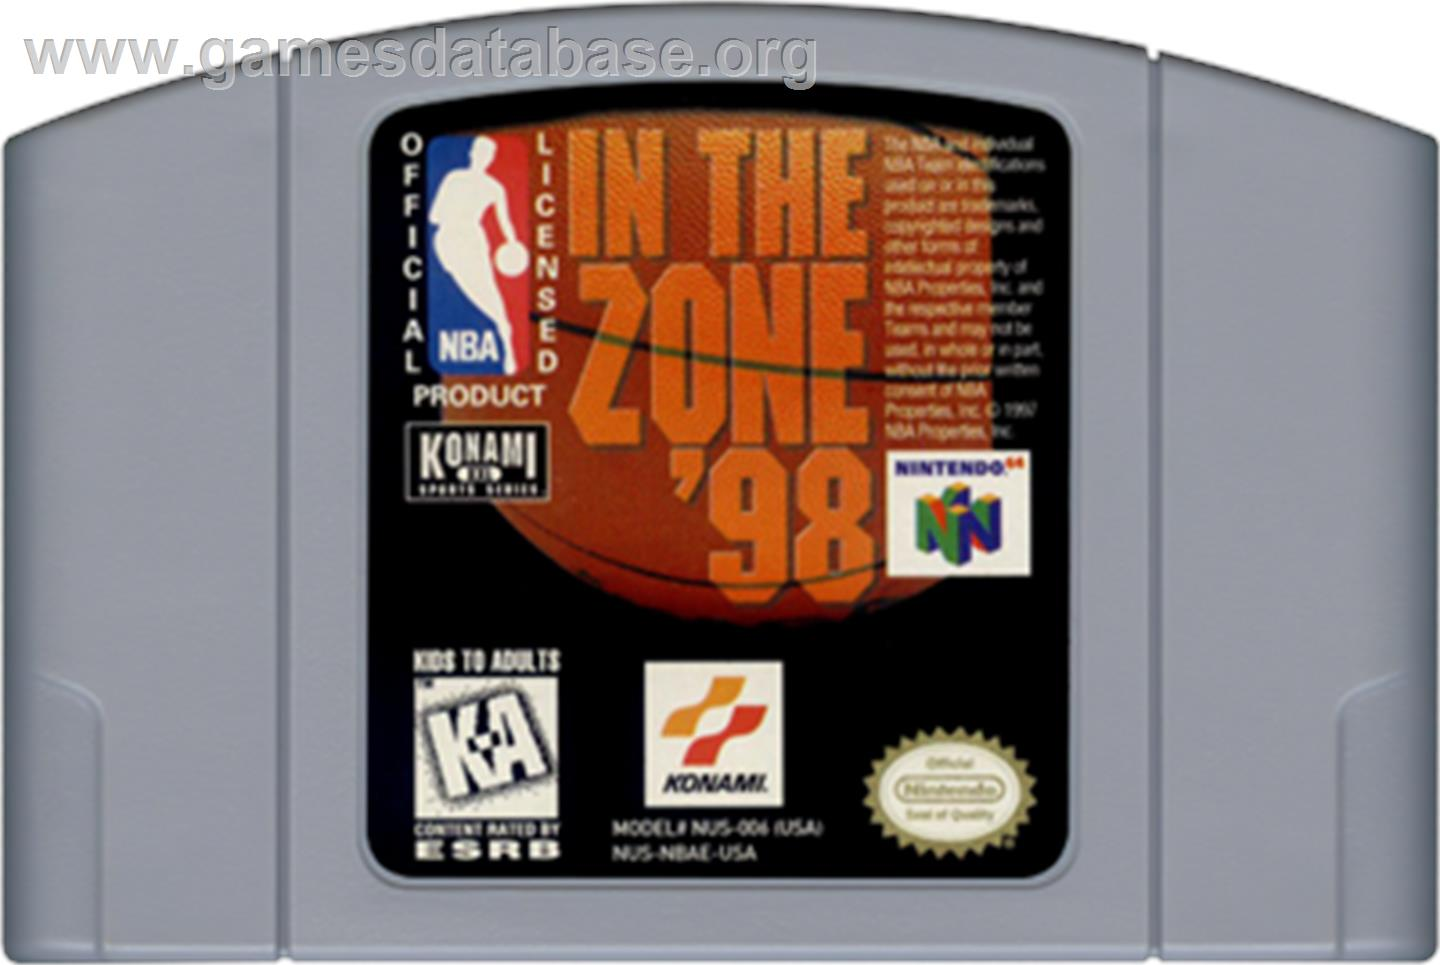 Cartridge artwork for NBA: In the Zone '98 on the Nintendo N64.